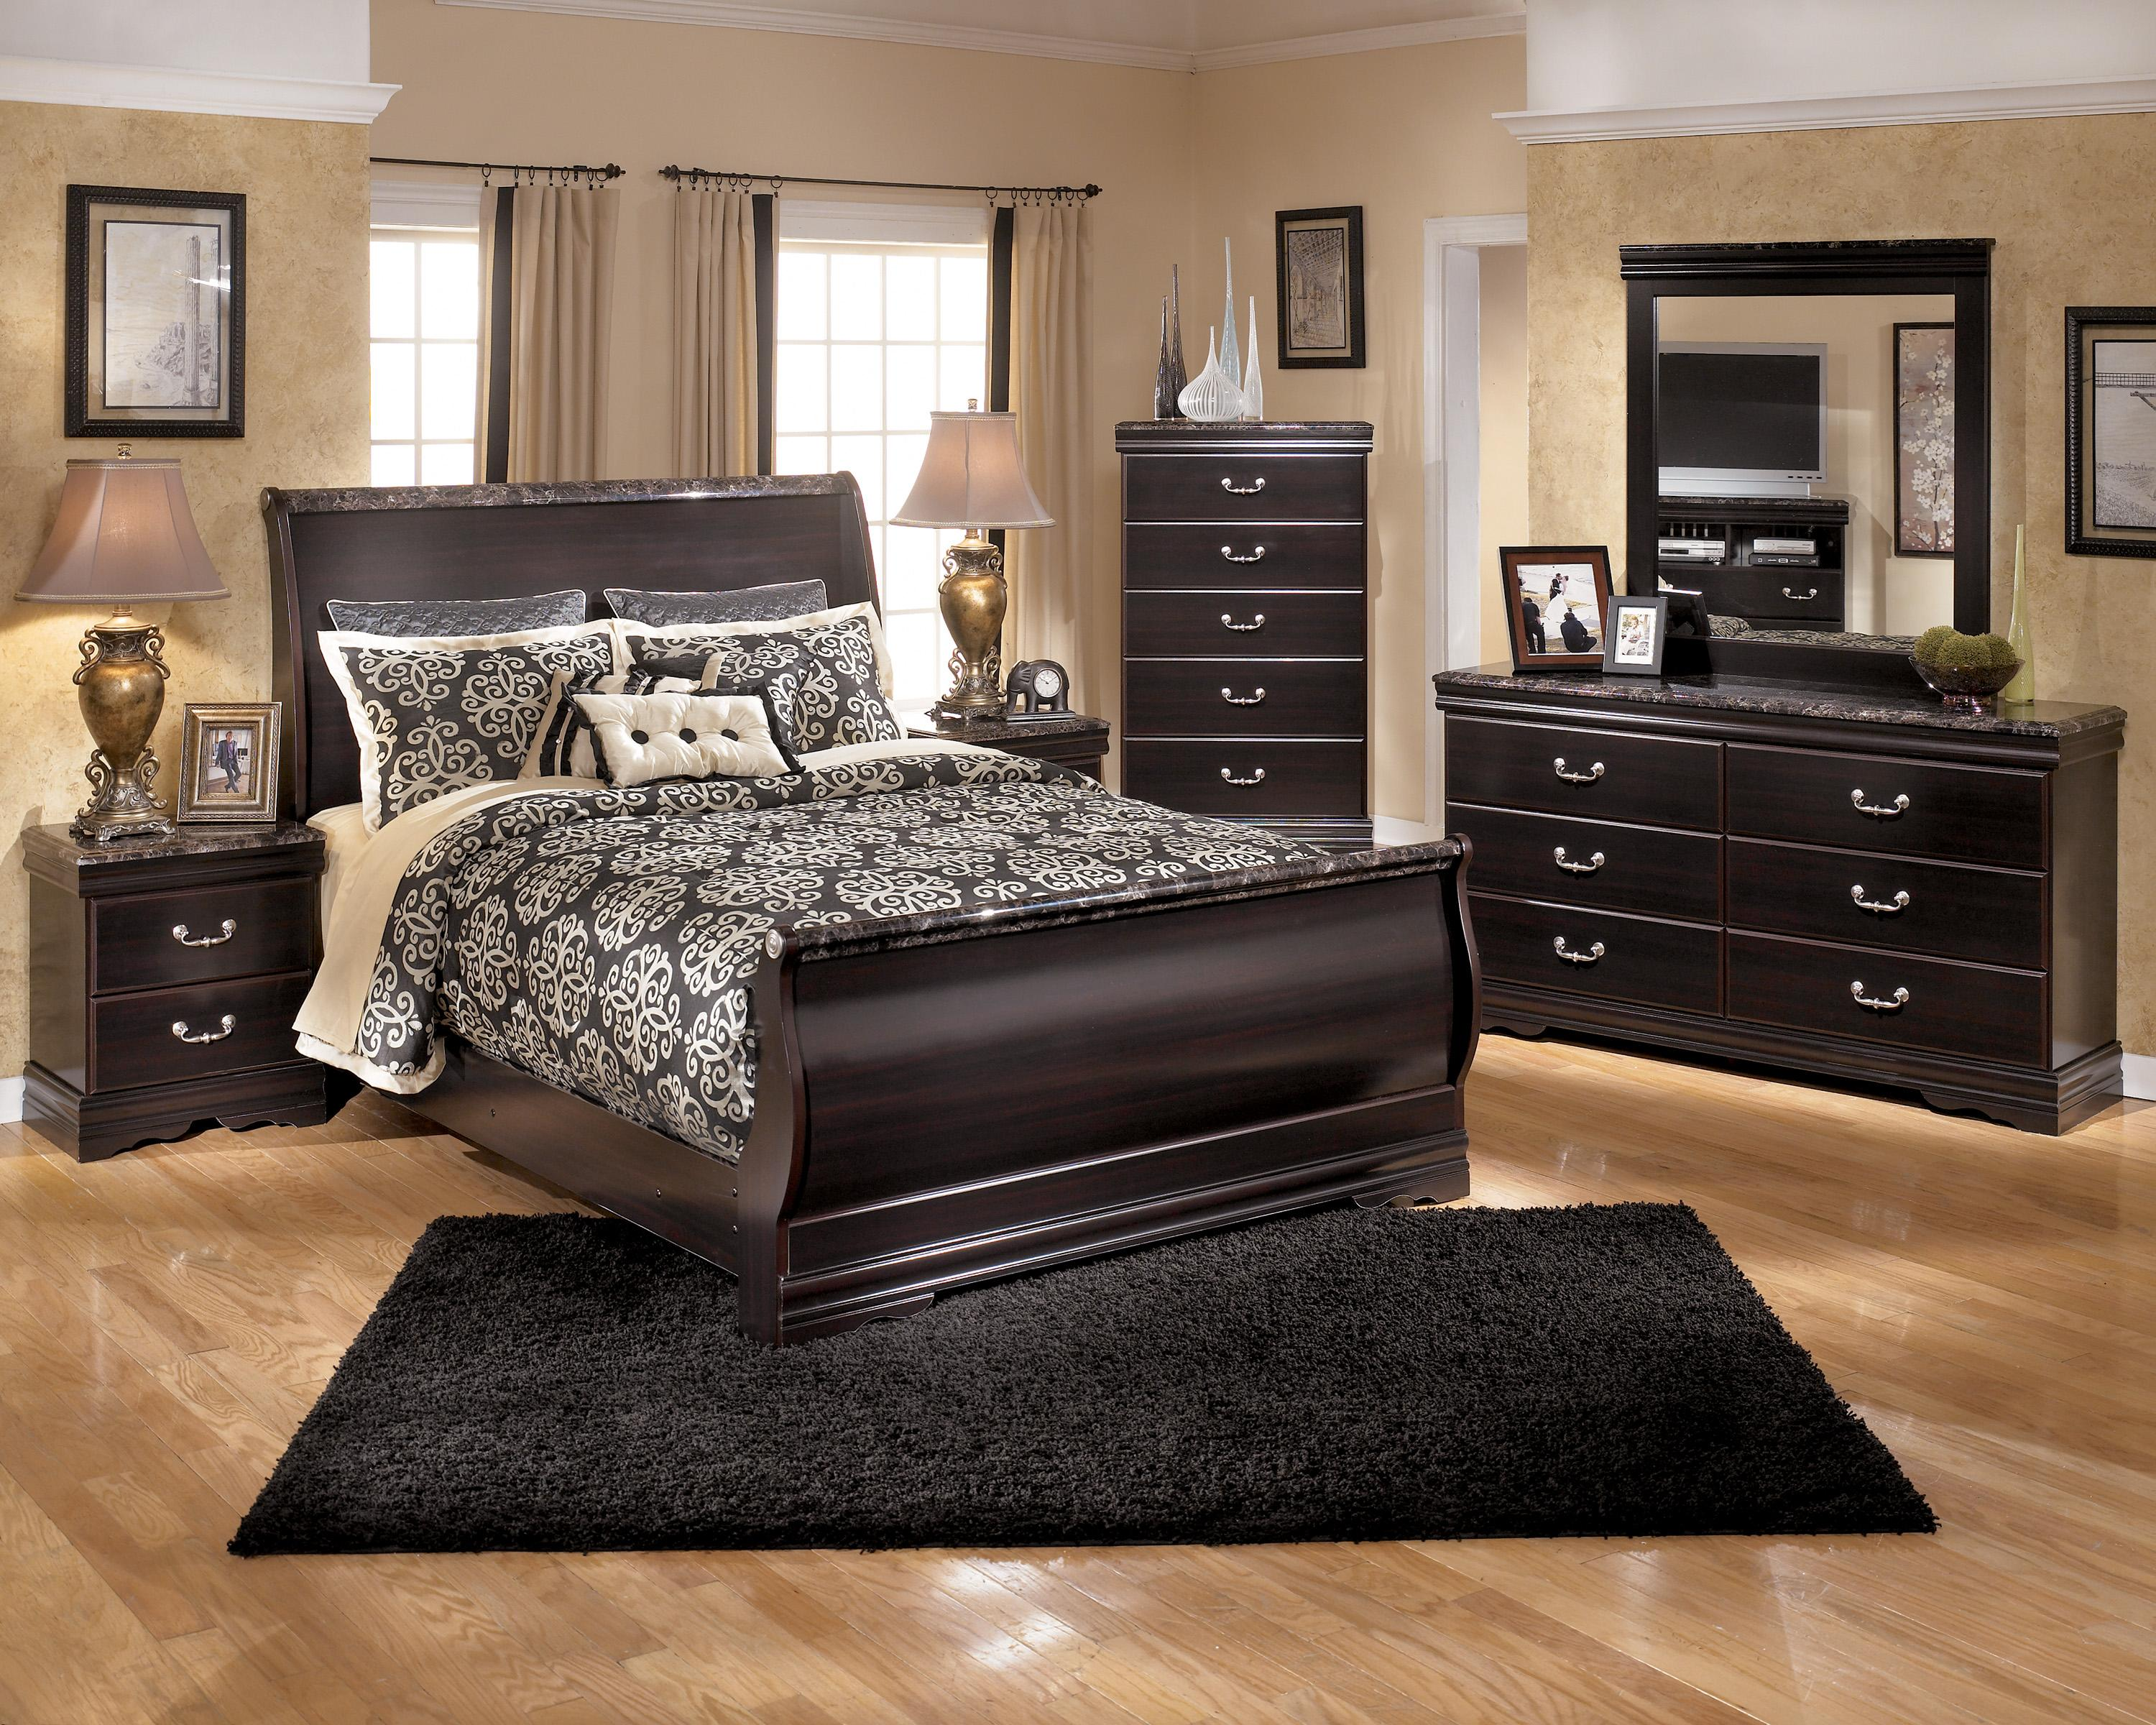 Signature Design by Ashley Esmarelda Queen Bedroom Group - Item Number: B179 Q Bedroom Group 1